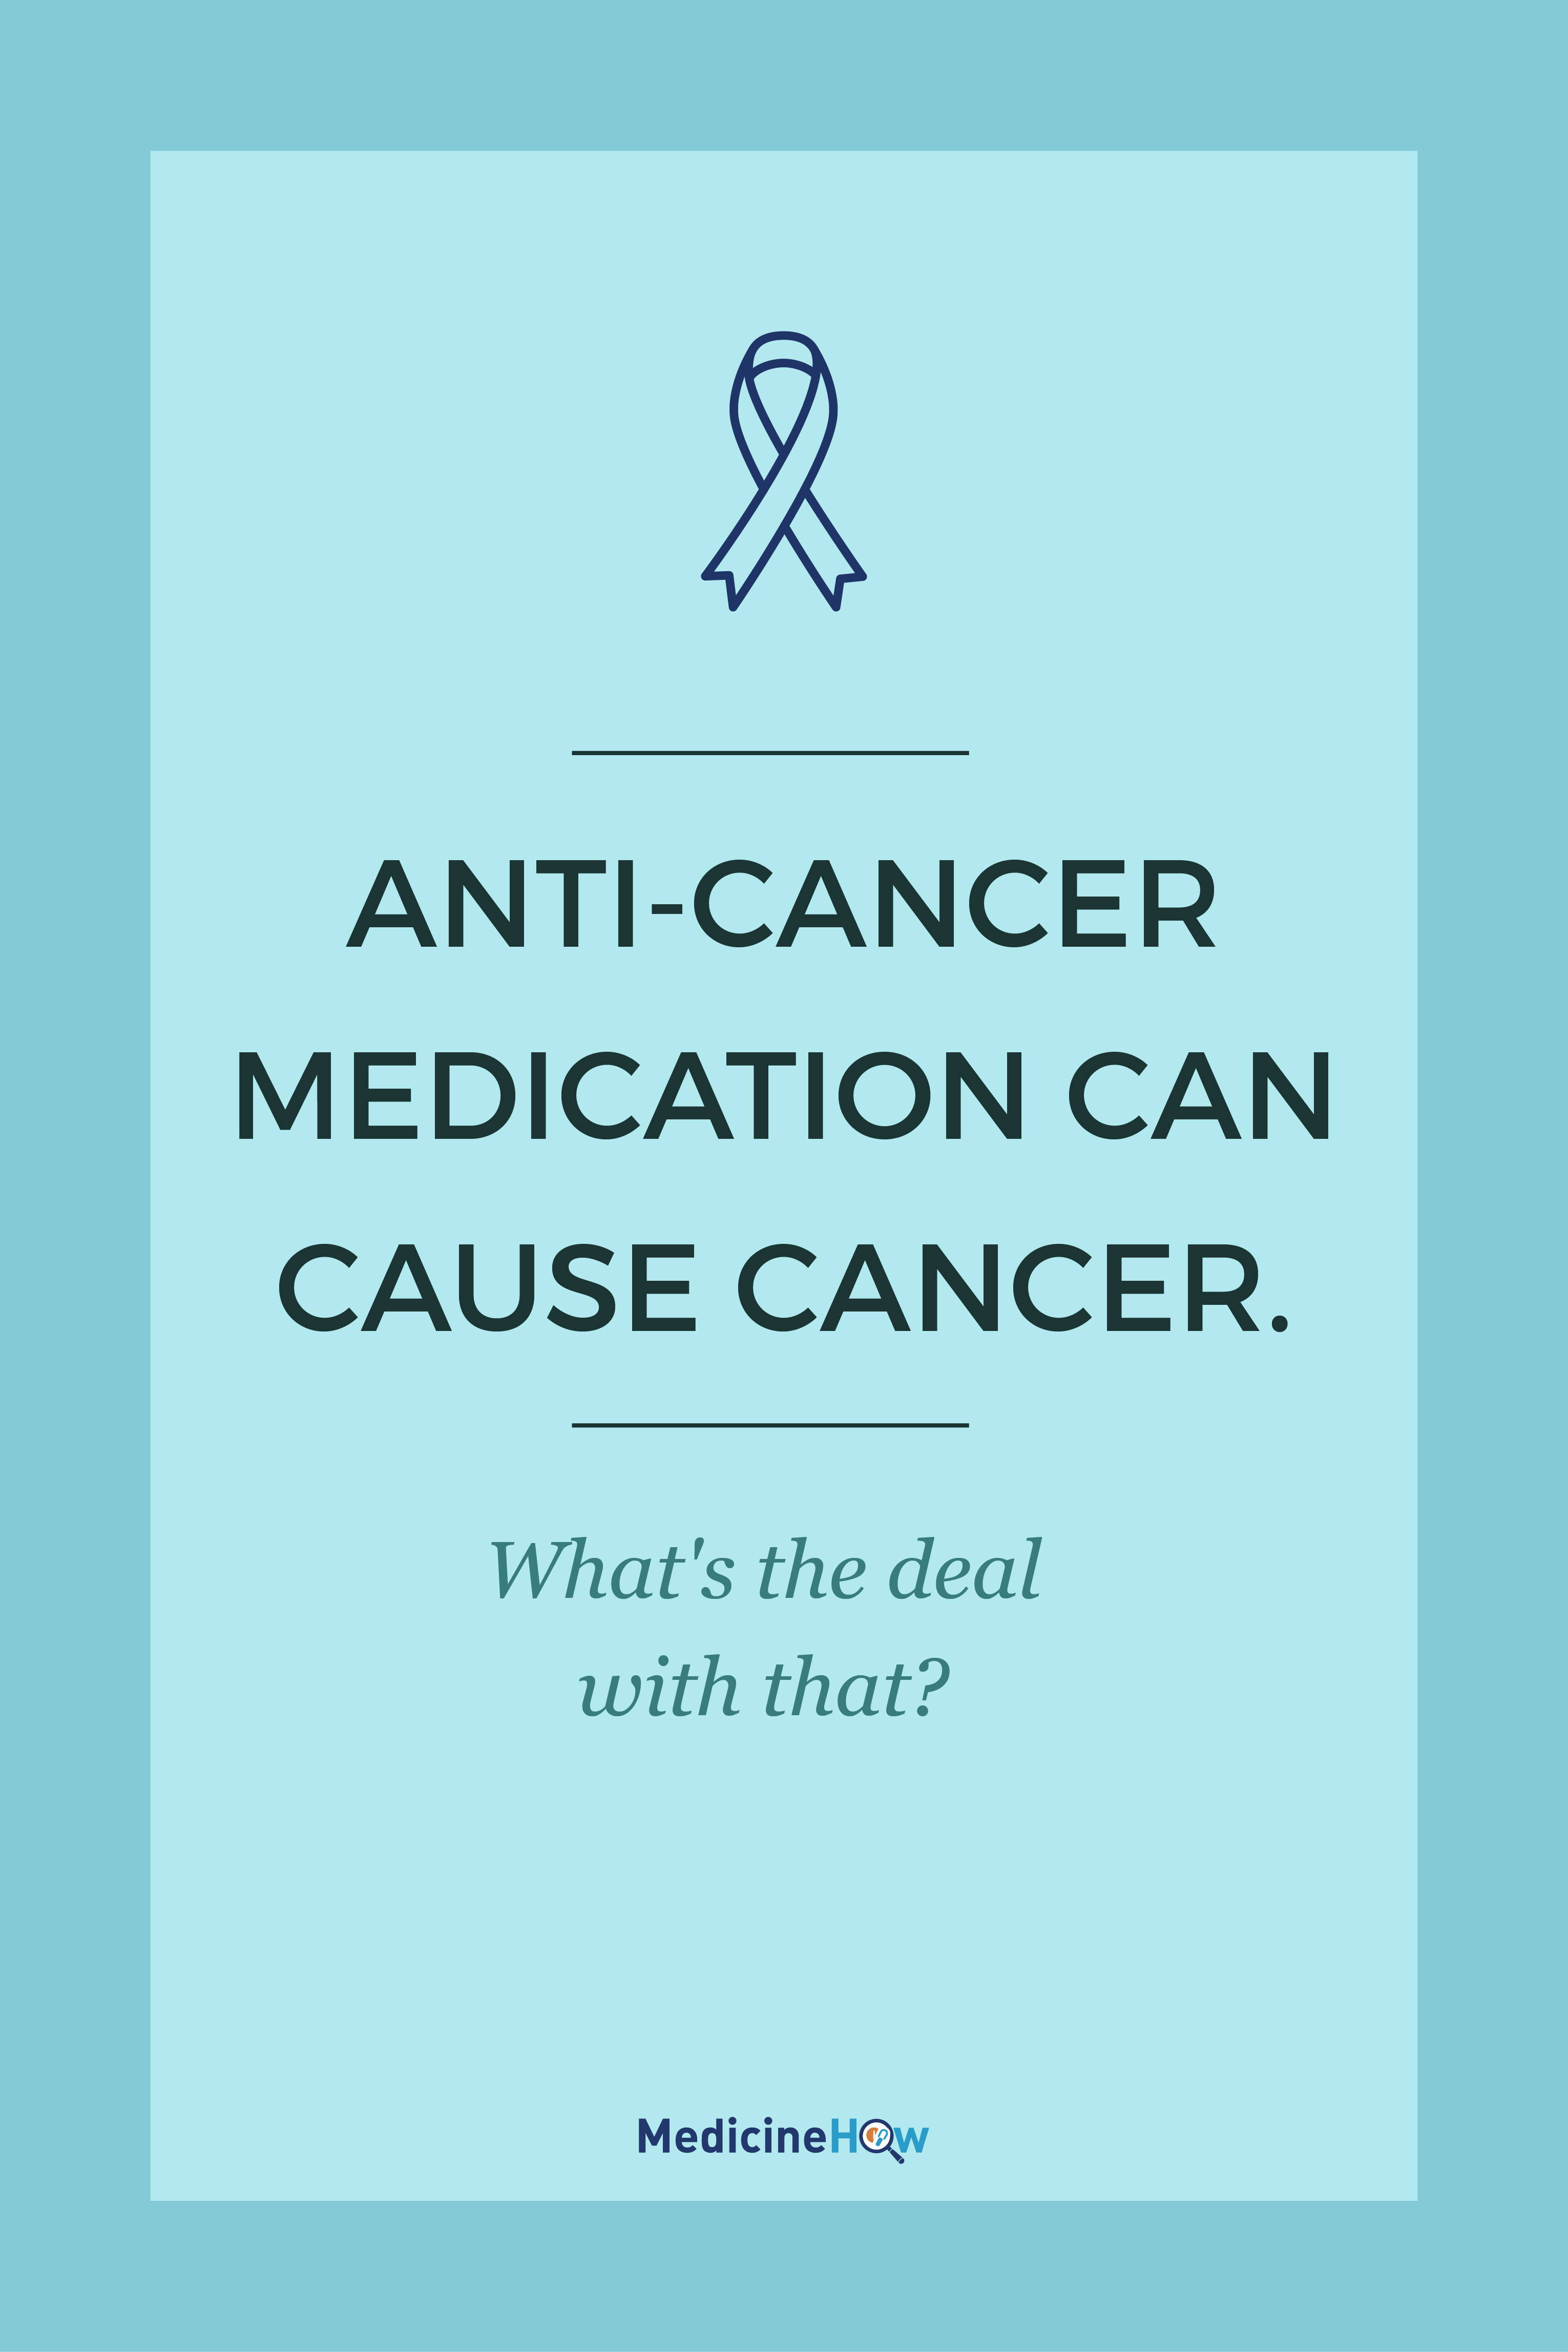 Anti-Cancer Medication Can Cause Cancer. What's the deal with that?